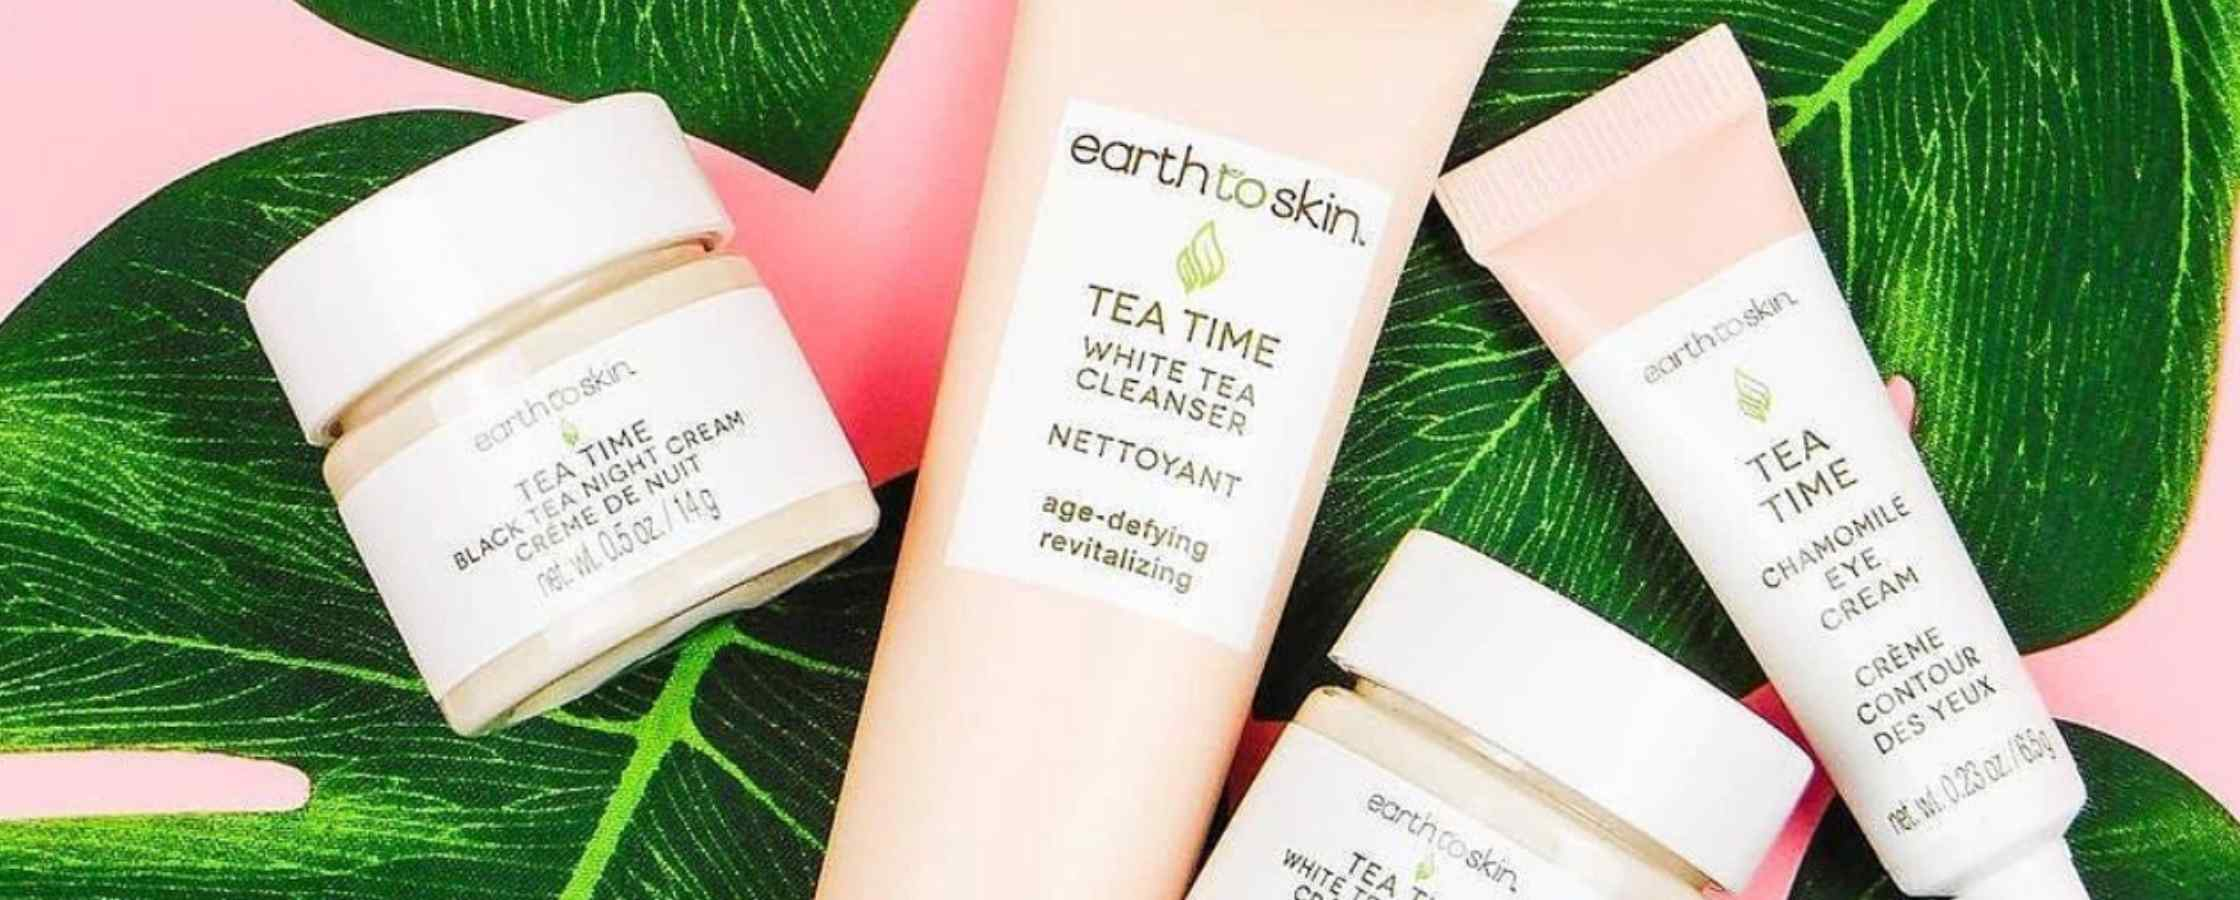 Earth to Skin Reviews – Should You Put It On Your Skin?